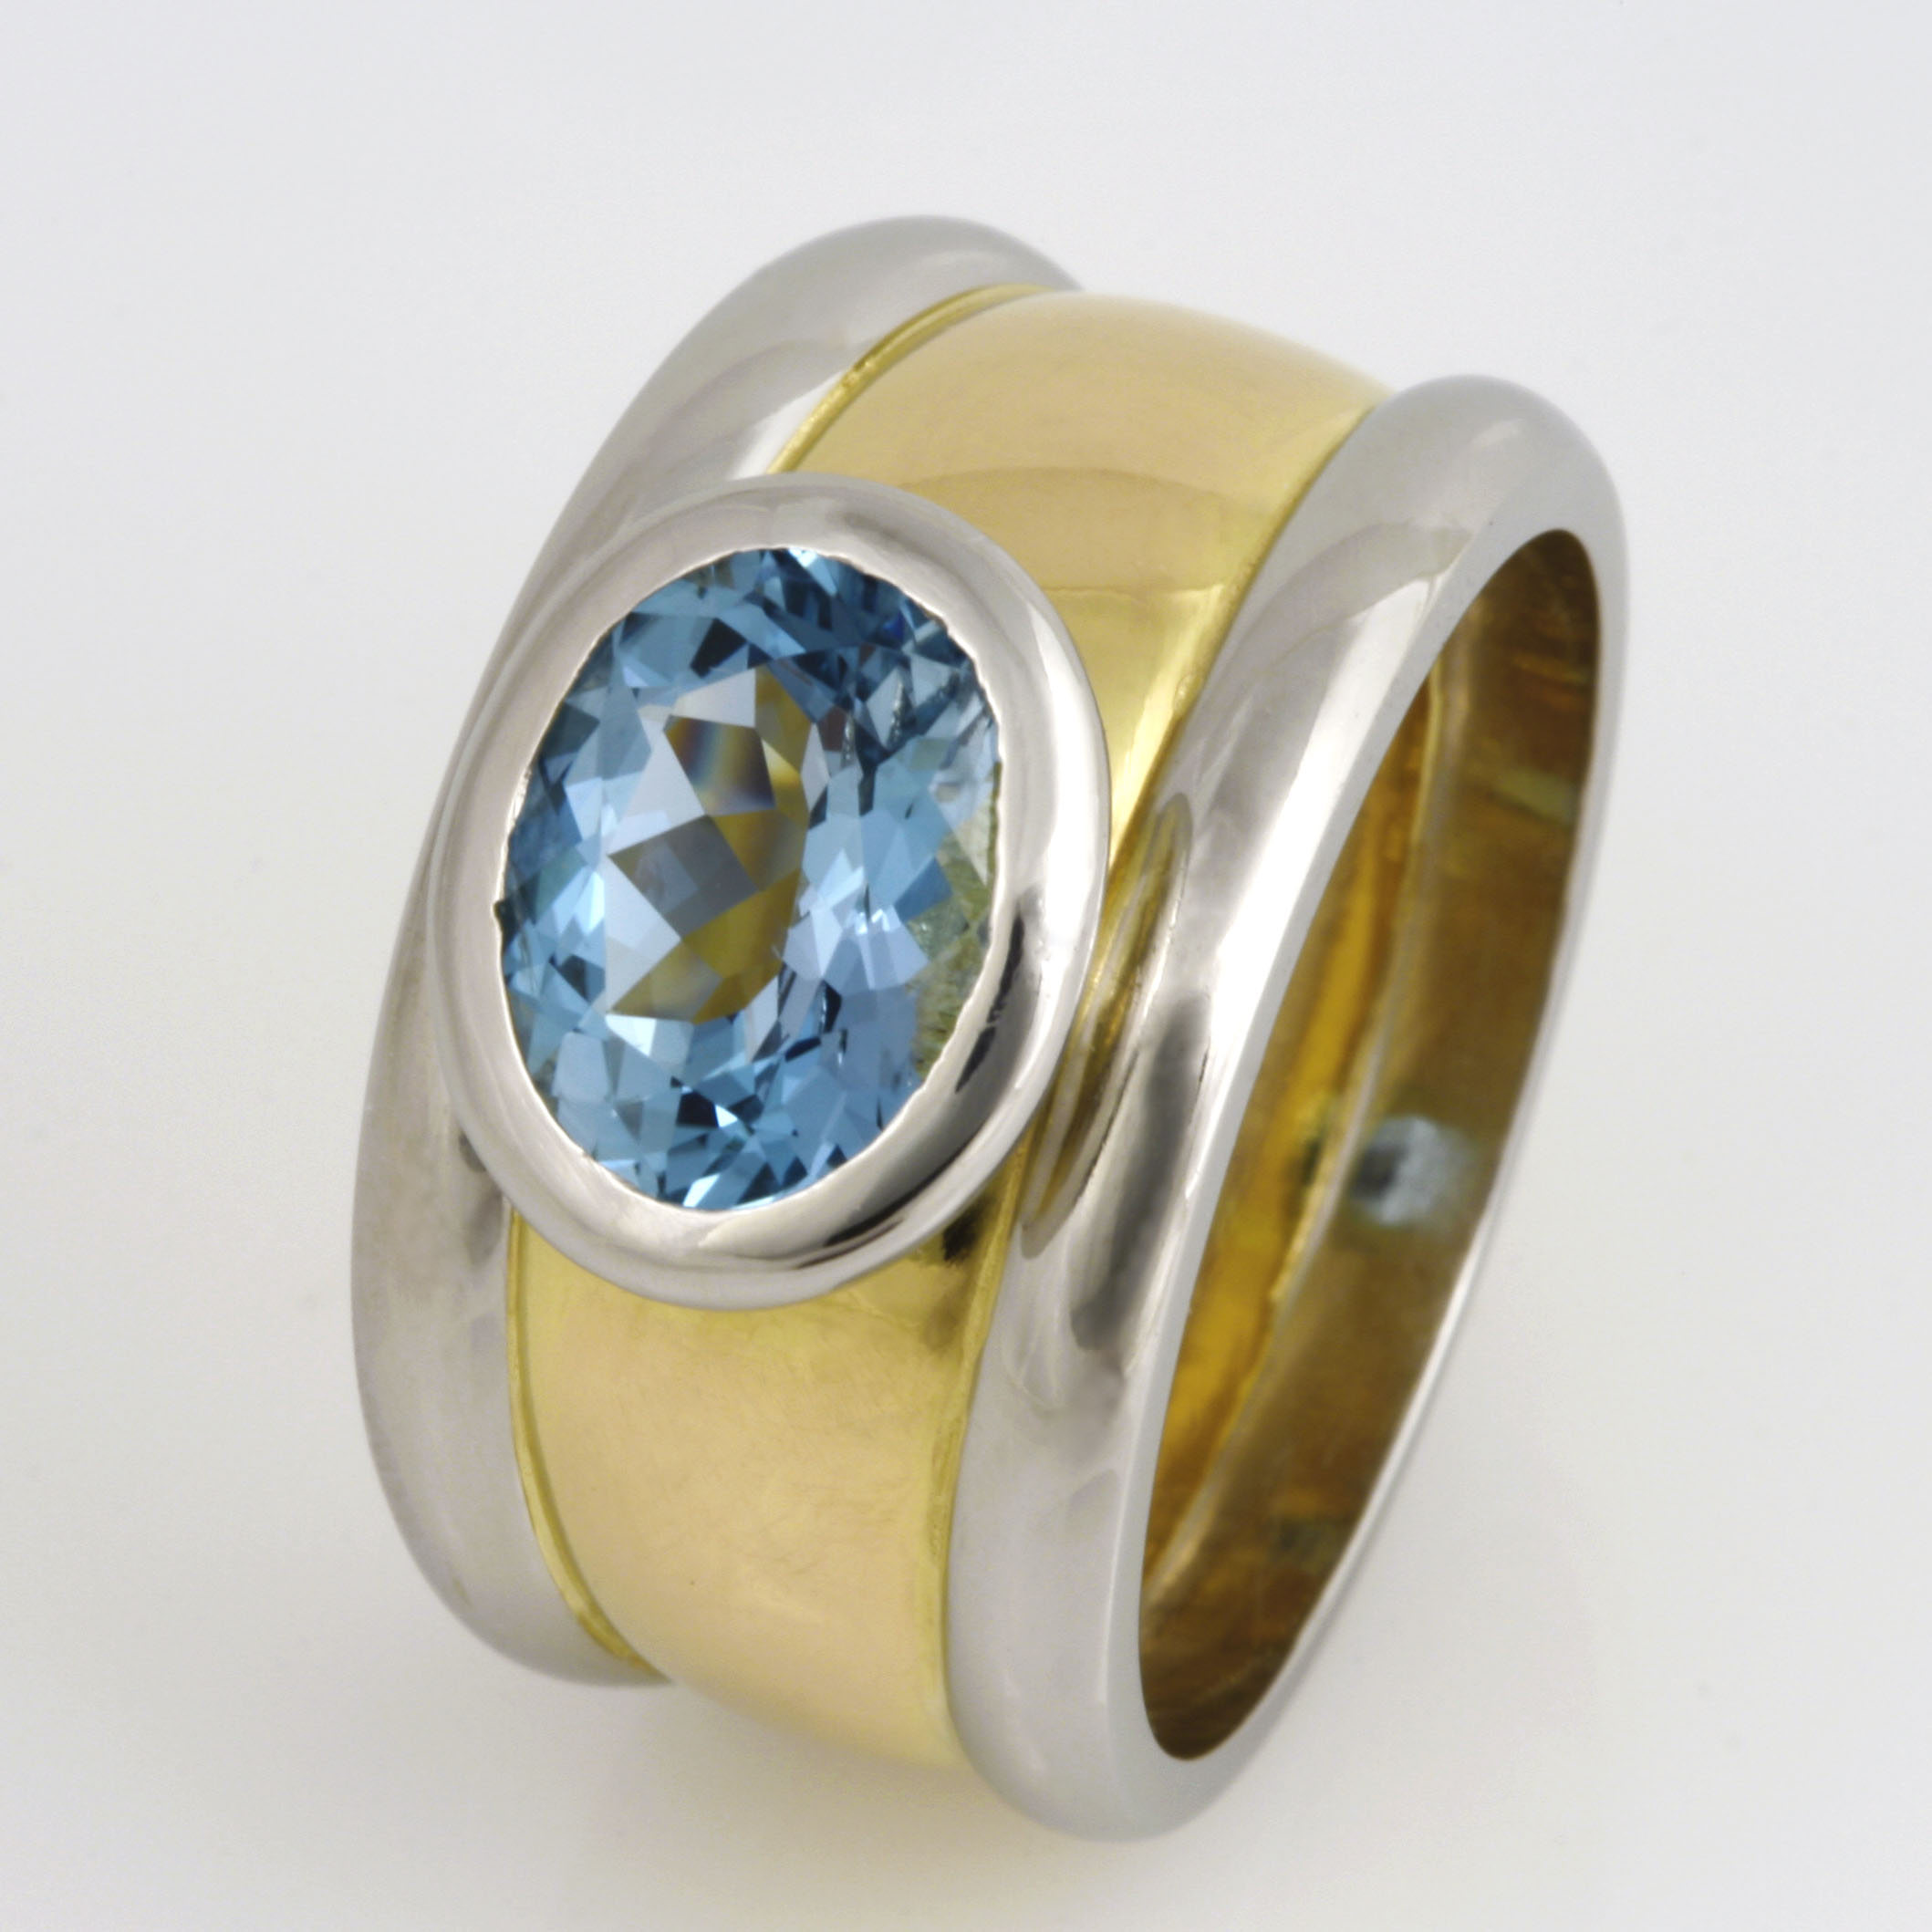 Ladies 18ct yellow gold and platinum ring featuring an oval Aquamarine